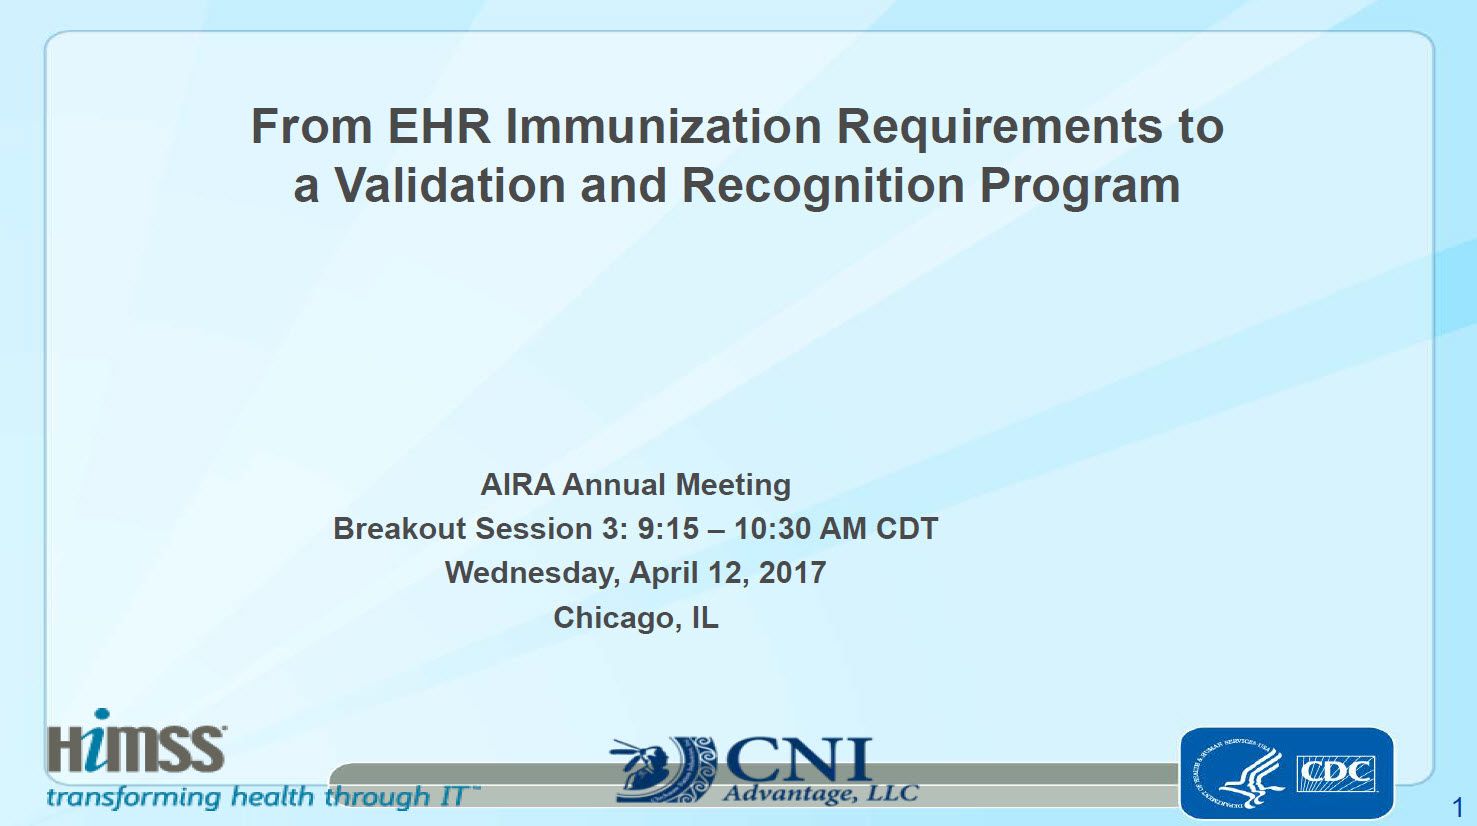 From EHR Immunization Requirements to a Validation and Recognition Program